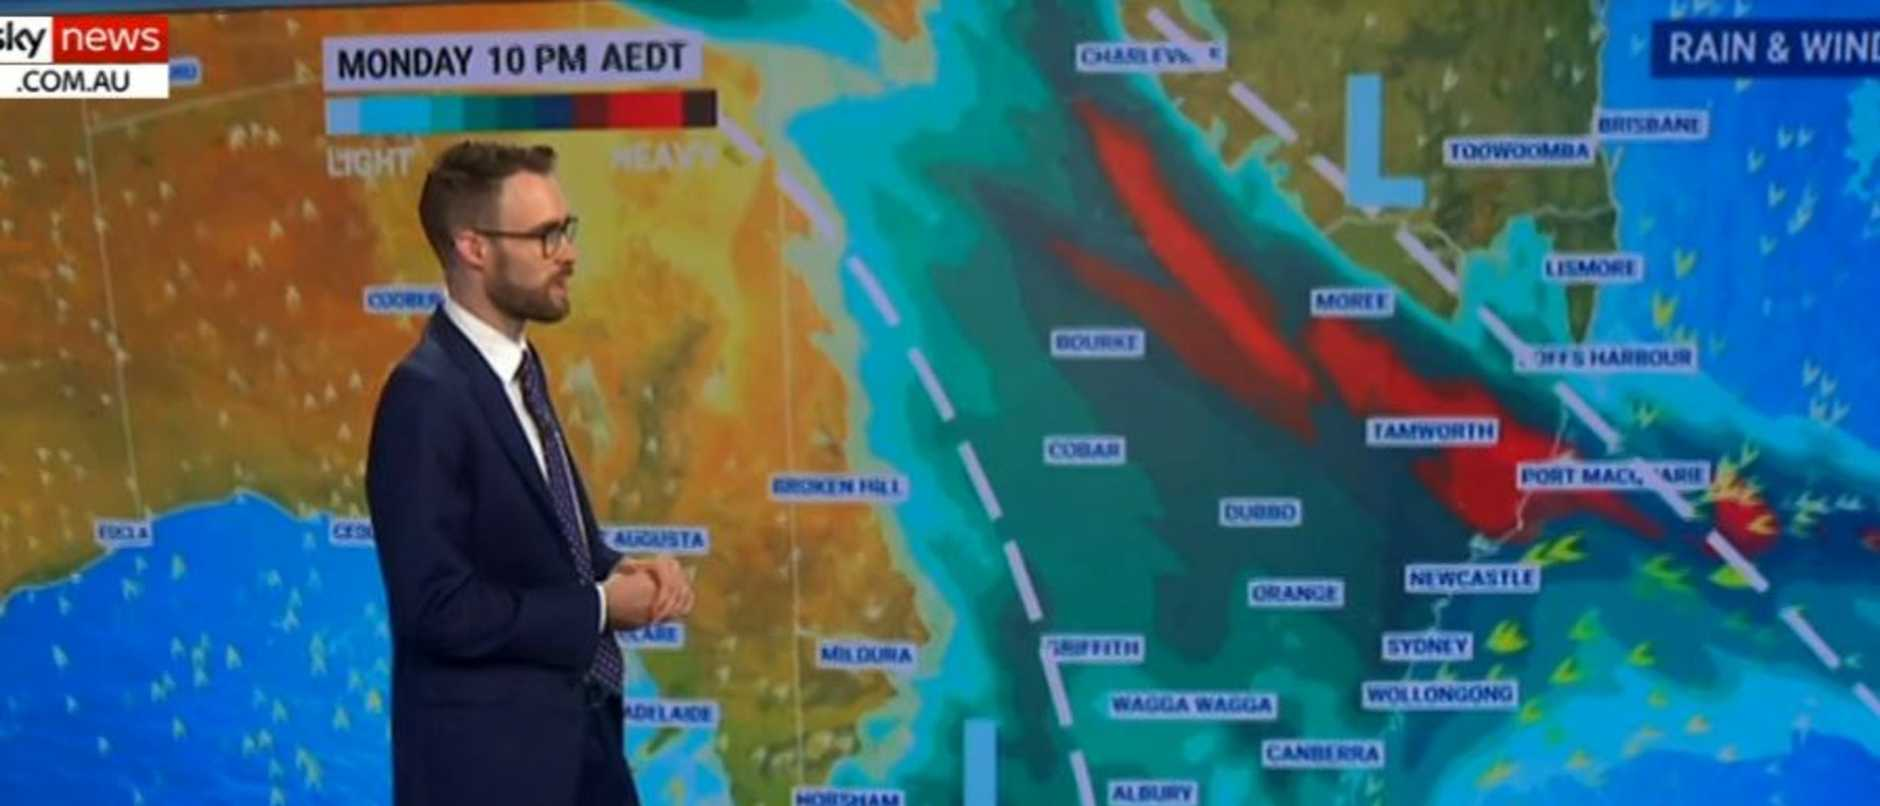 Australia's east is bracing for more wild weather from today.